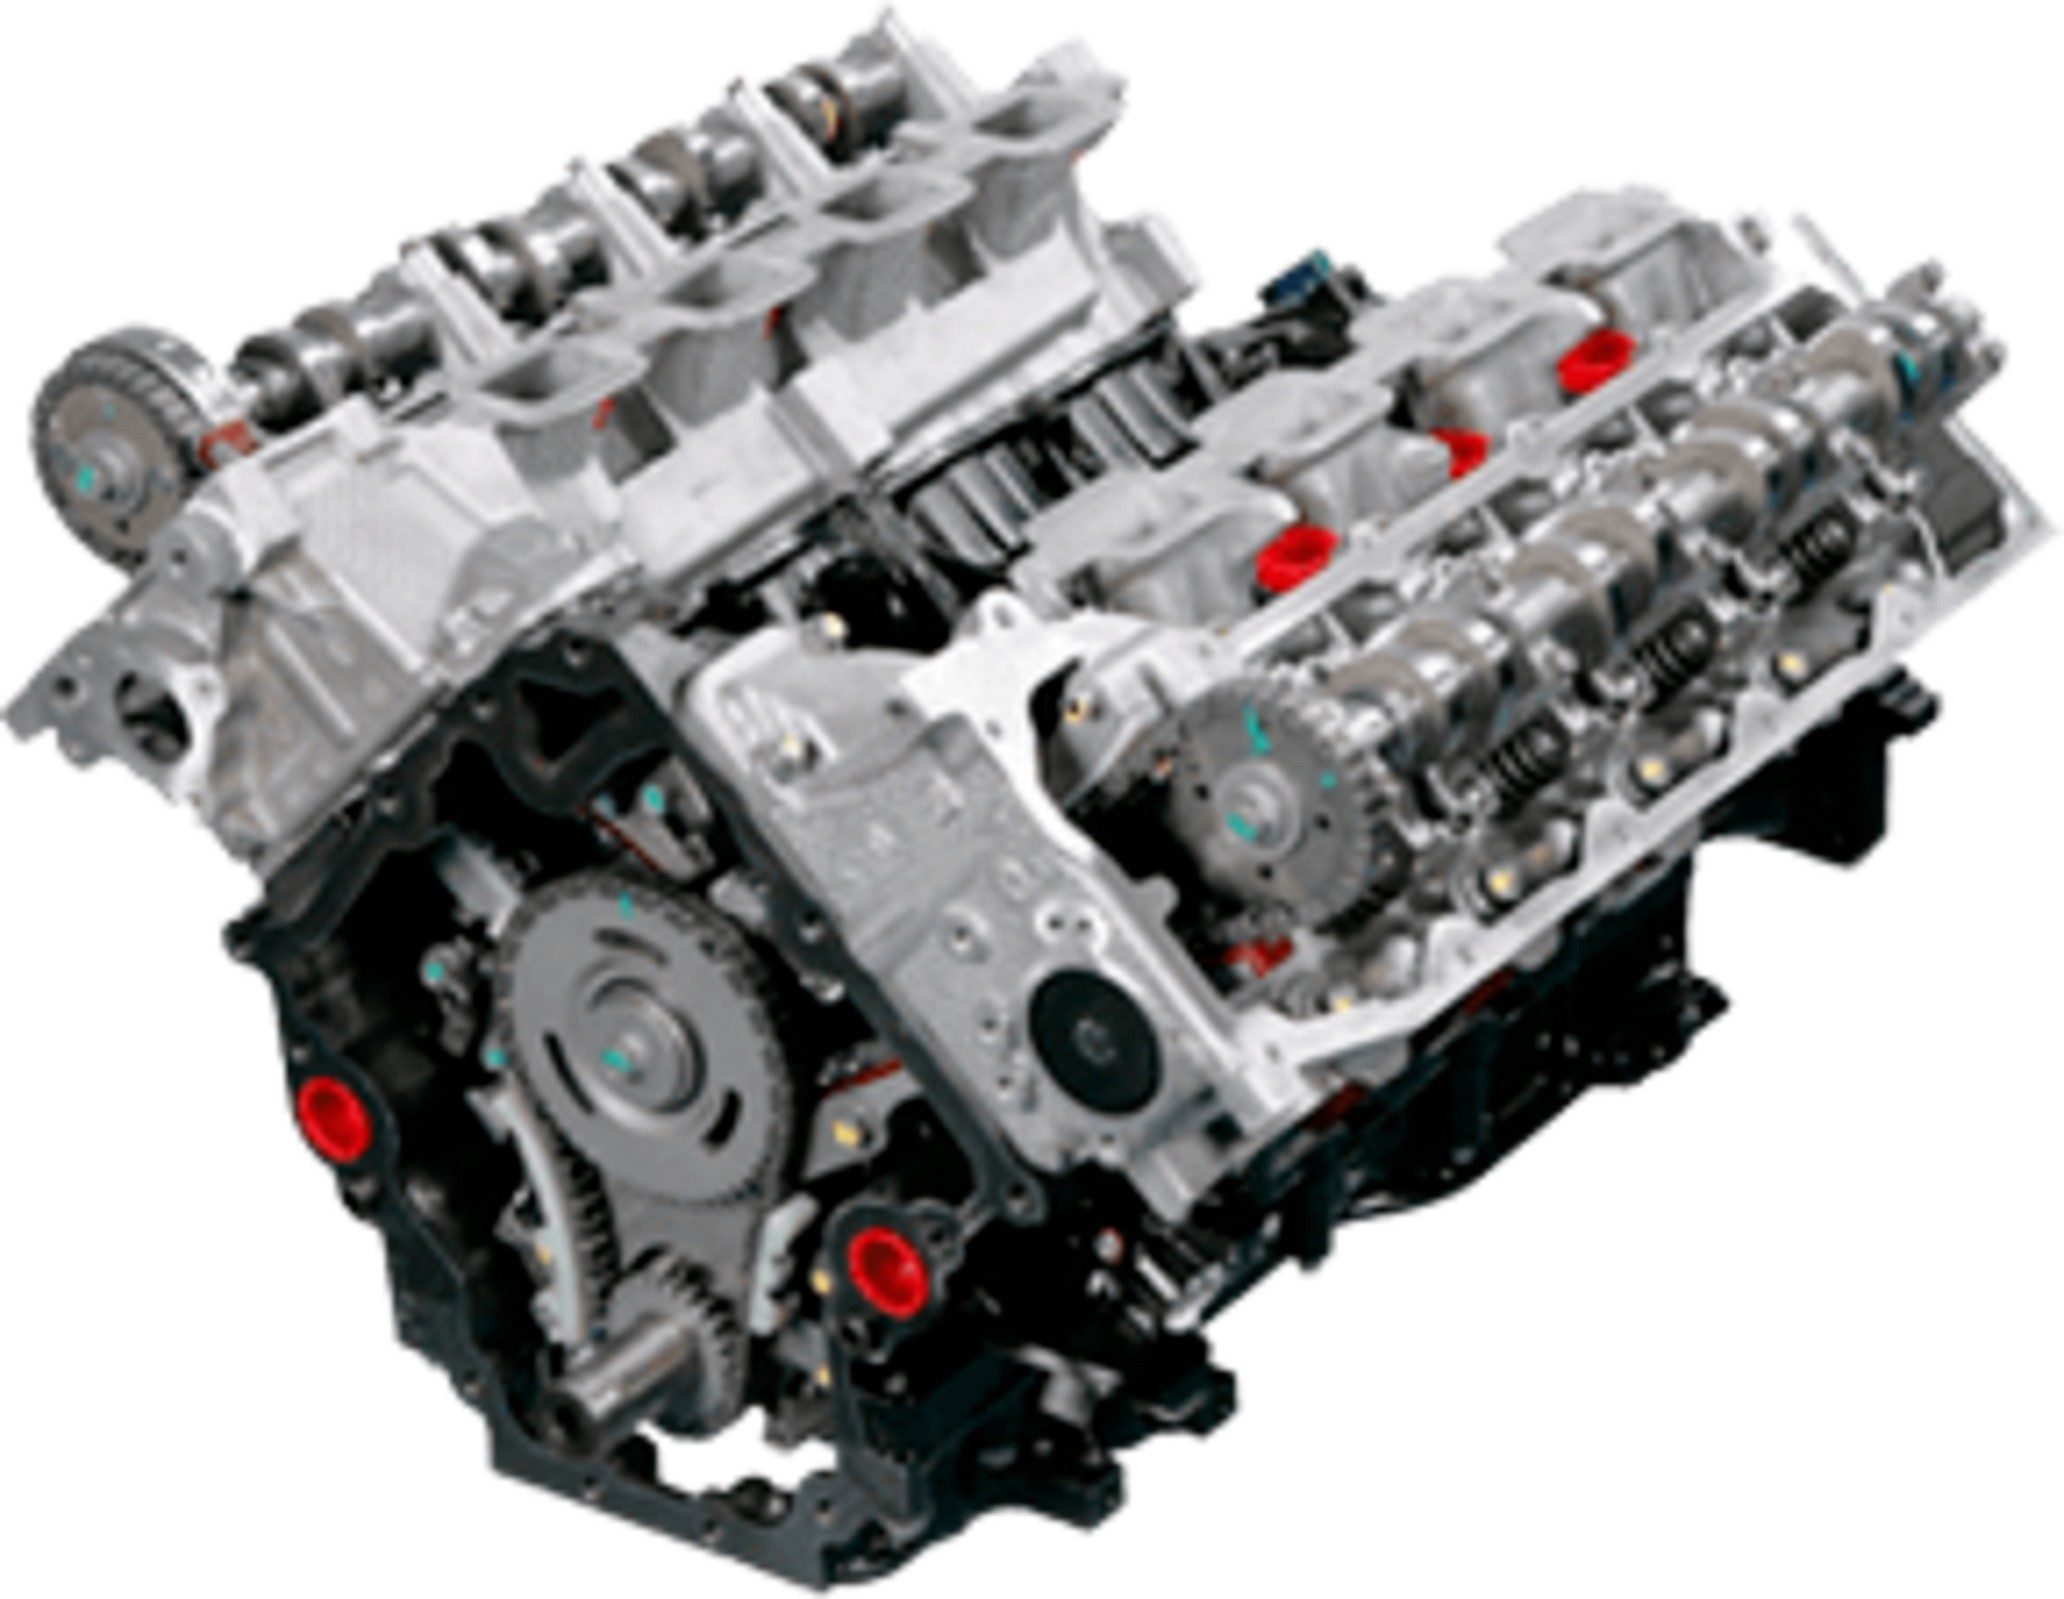 Remanufactured & Used Lincoln Zephyr Engines For Sale In USA